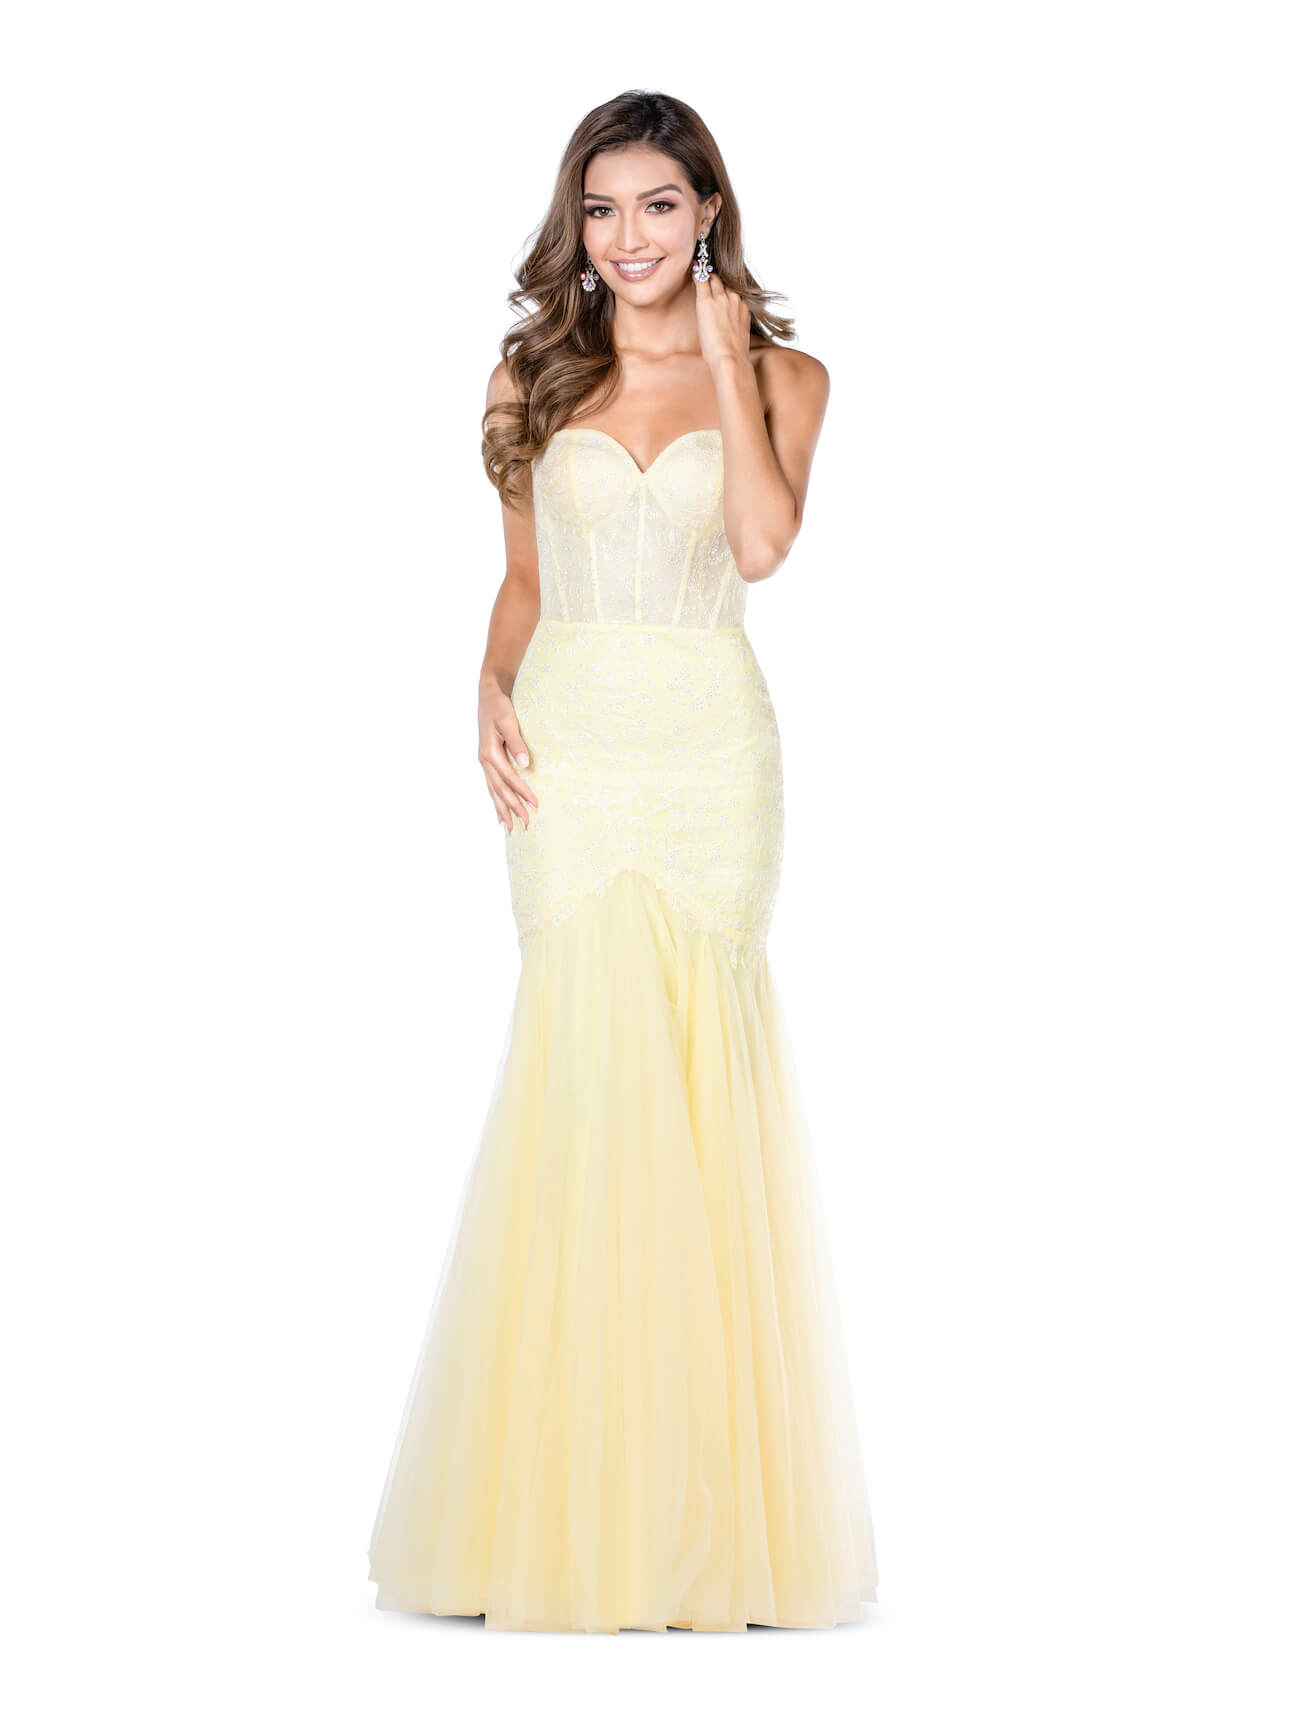 Queenly size 0 Vienna Yellow Mermaid evening gown/formal dress